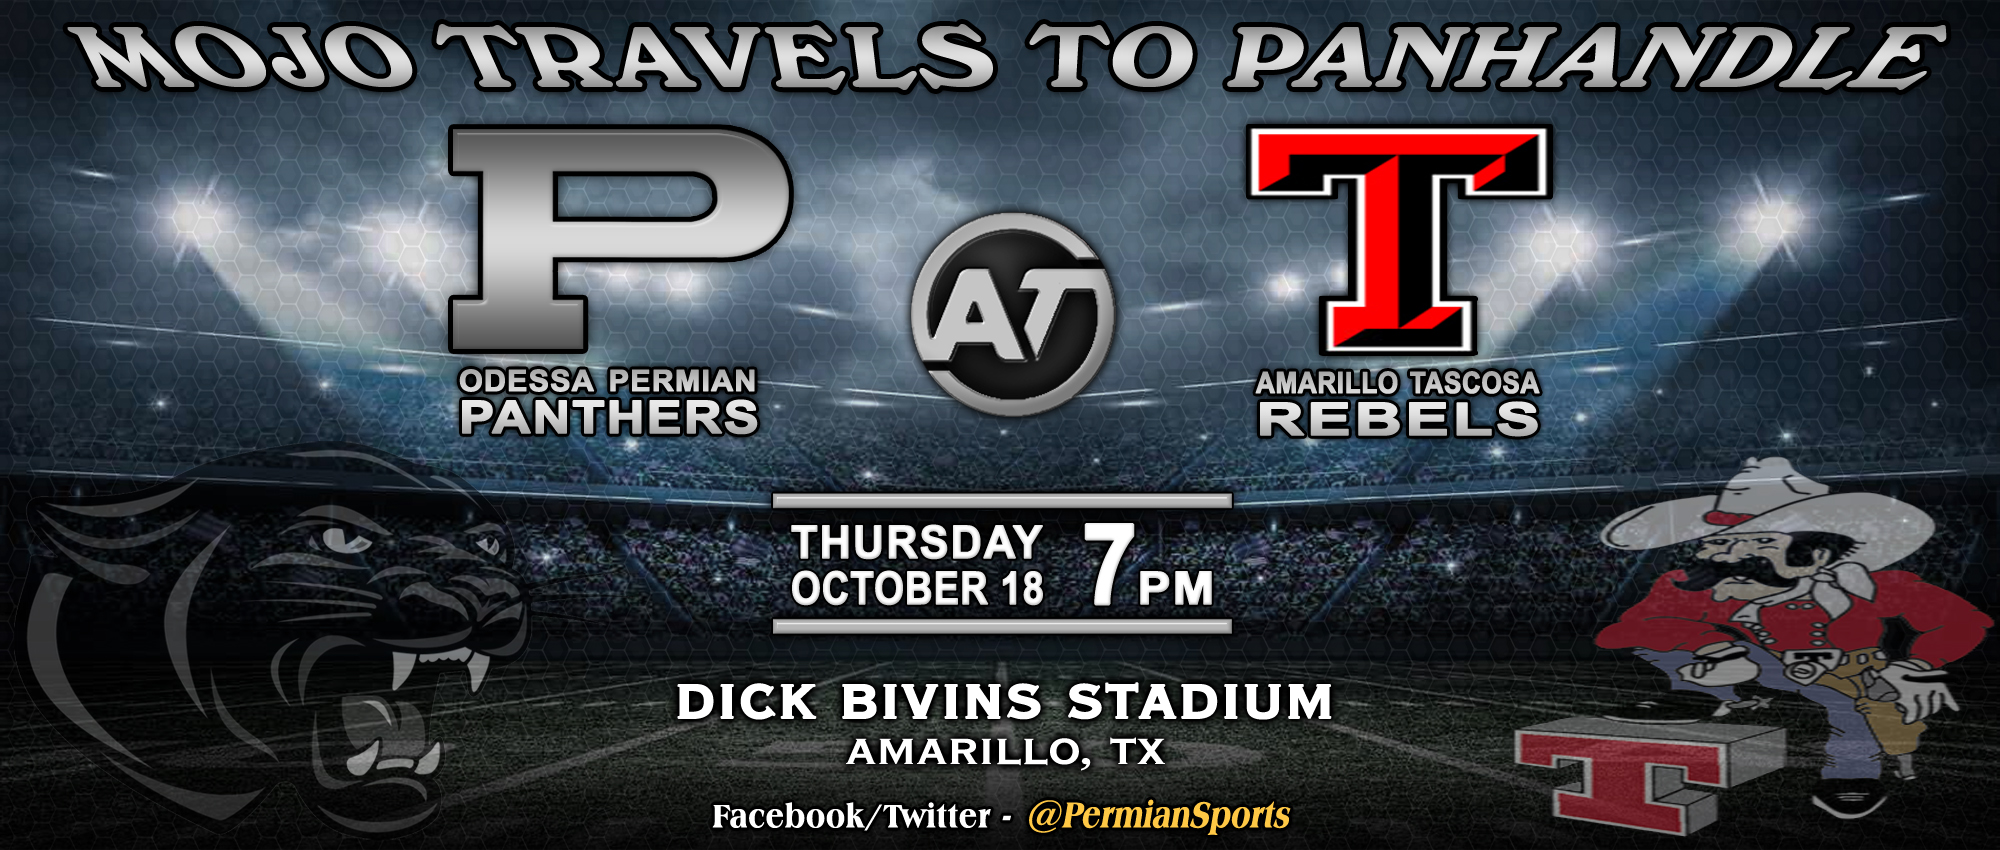 permian at amarillo tascosa